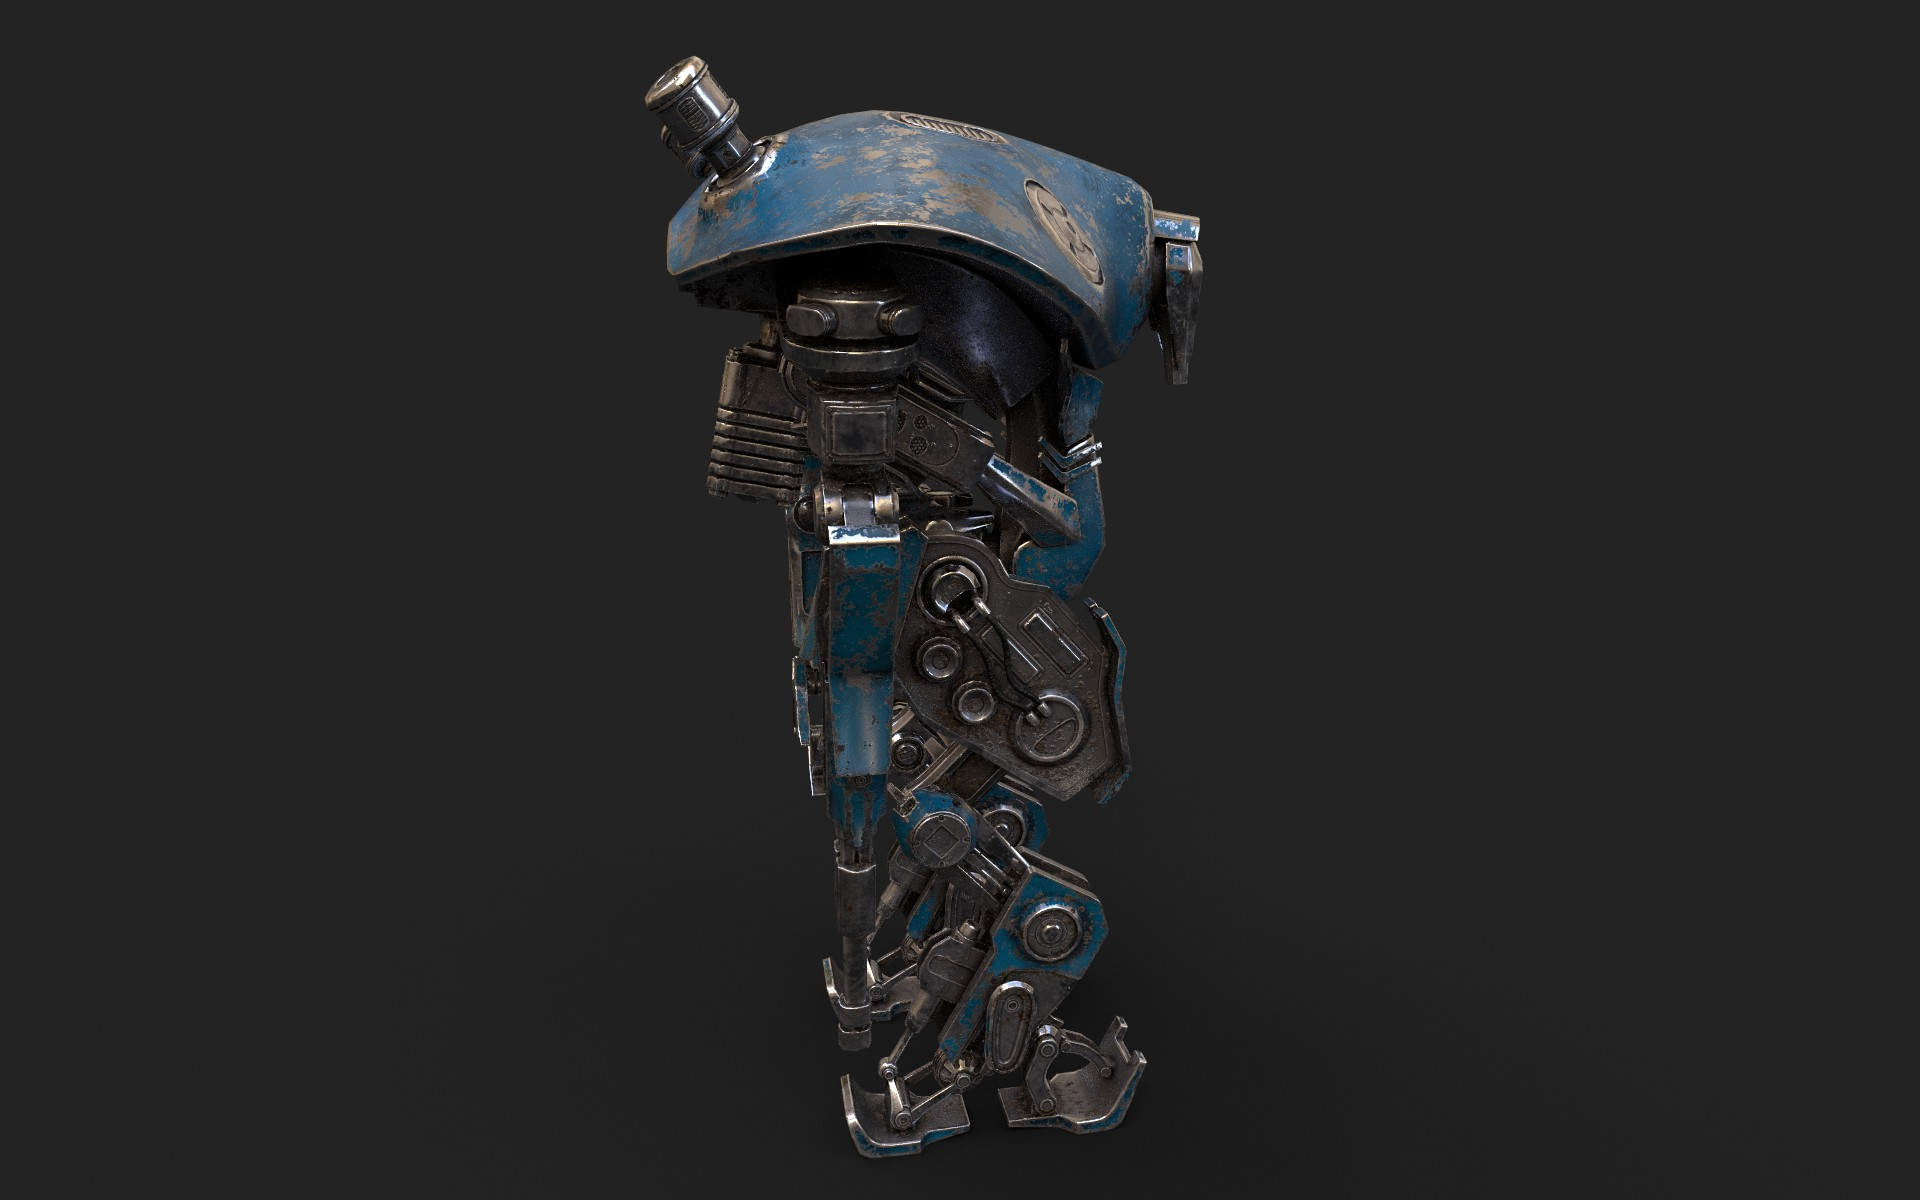 heavy robot vex700 3d model 3ds max fbx obj 279577